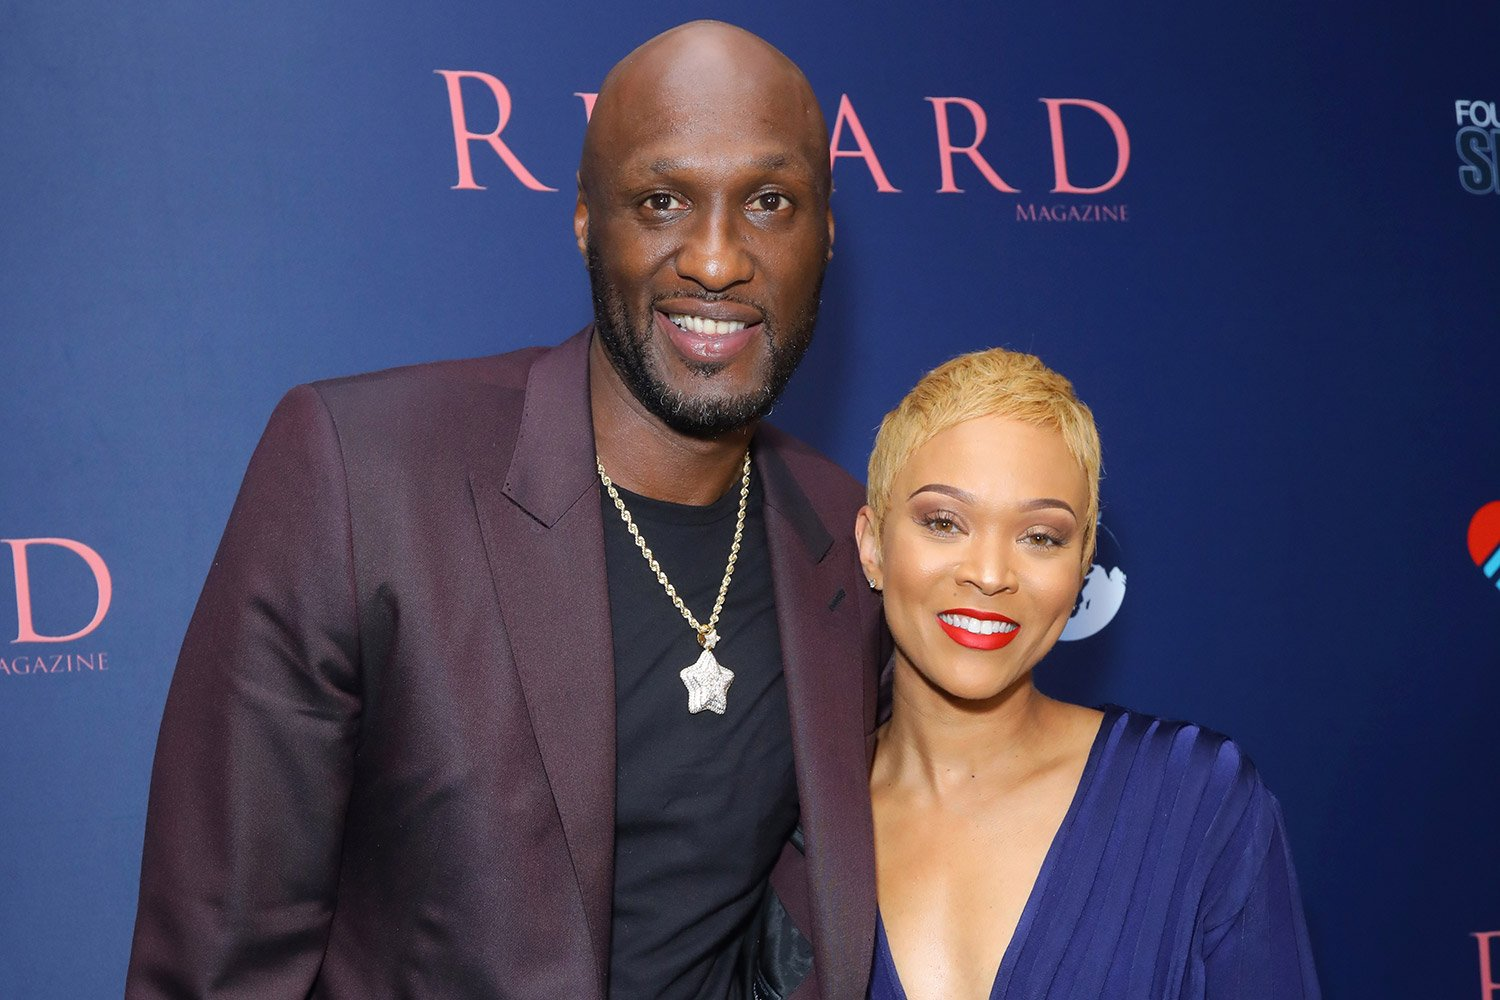 Lamar Odom Signed A Celebrity Boxing Deal – He Will Fight In June